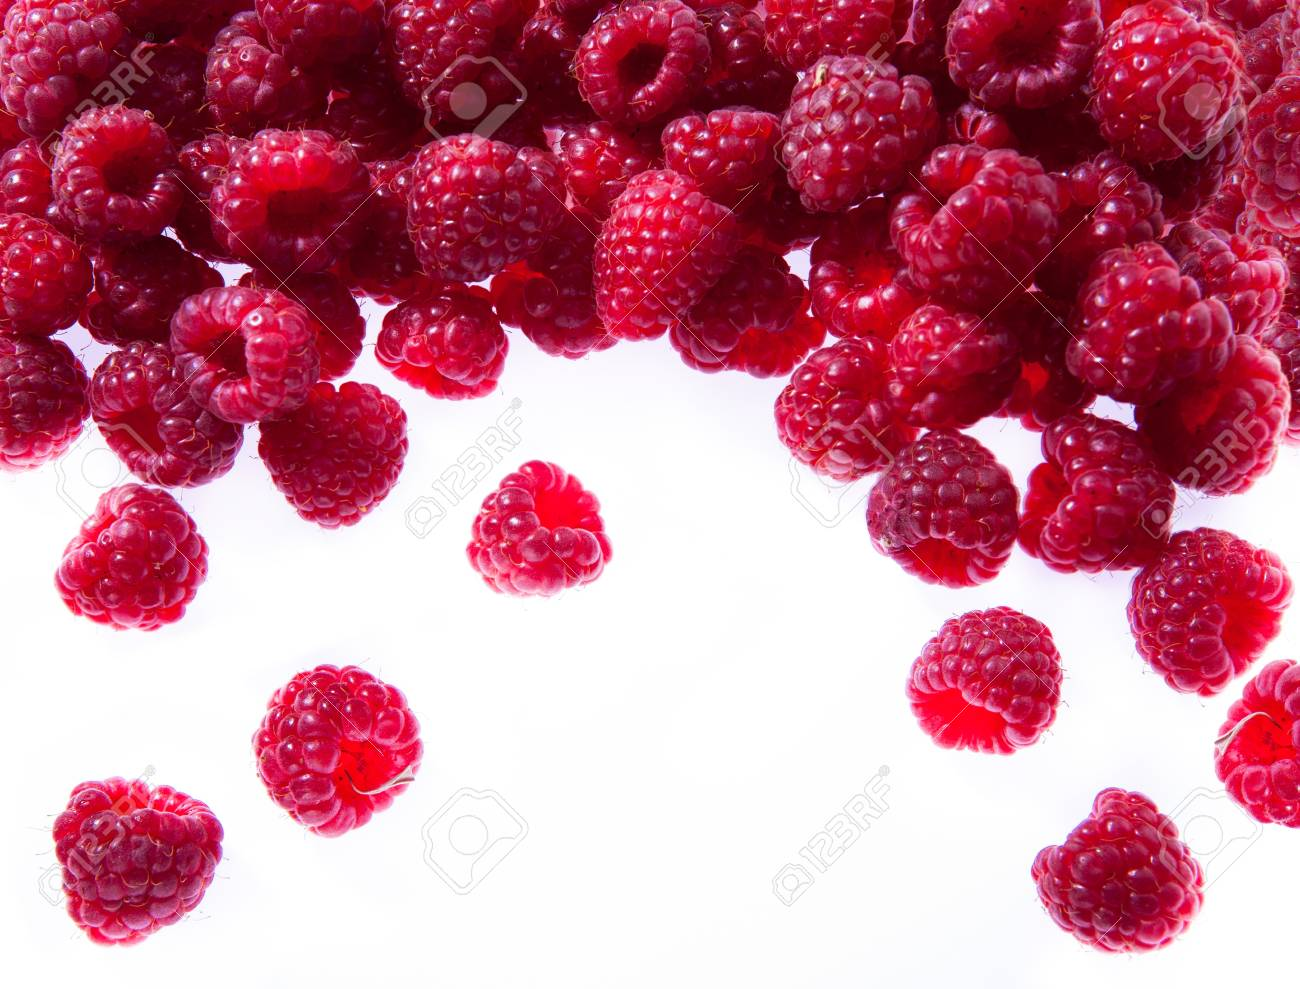 sweet red raspberries pour in the white background Stock Photo - 10671542